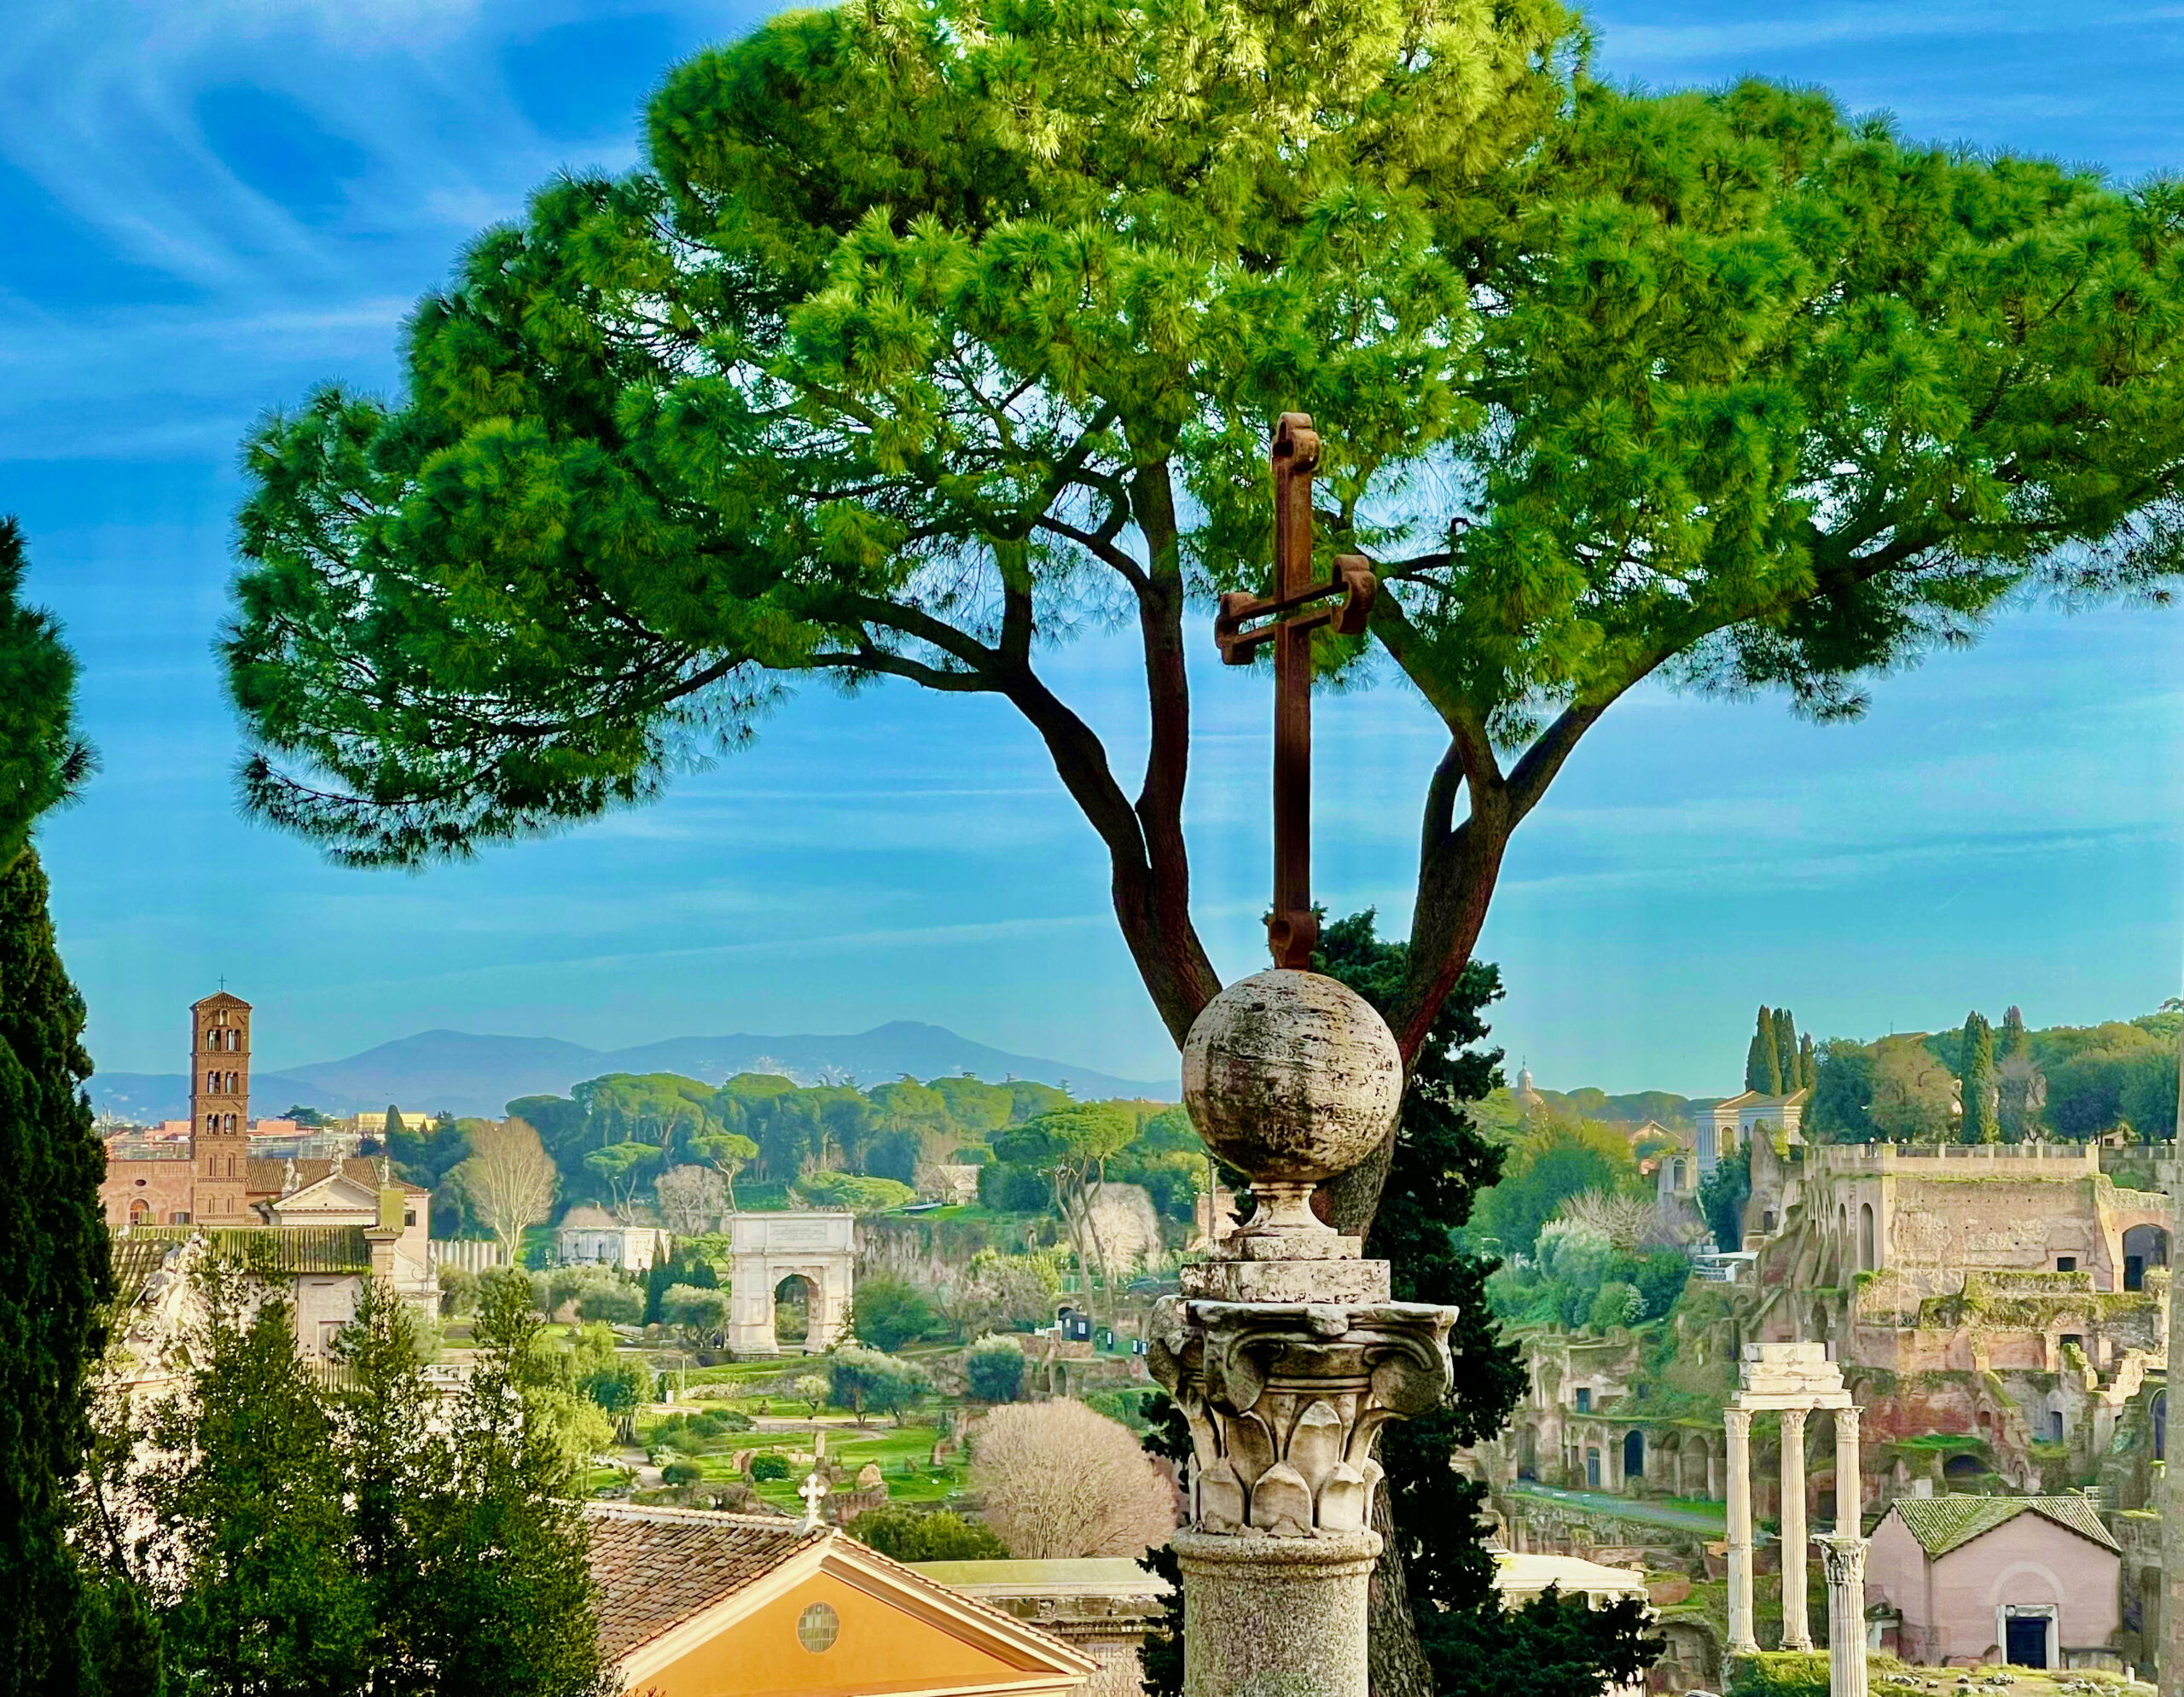 ROME IN TWO DAYS IS A COMPLETE TOUR TO VISIT THE TOP ATTRACTIONS OF ROME AND THE VATICAN CITY